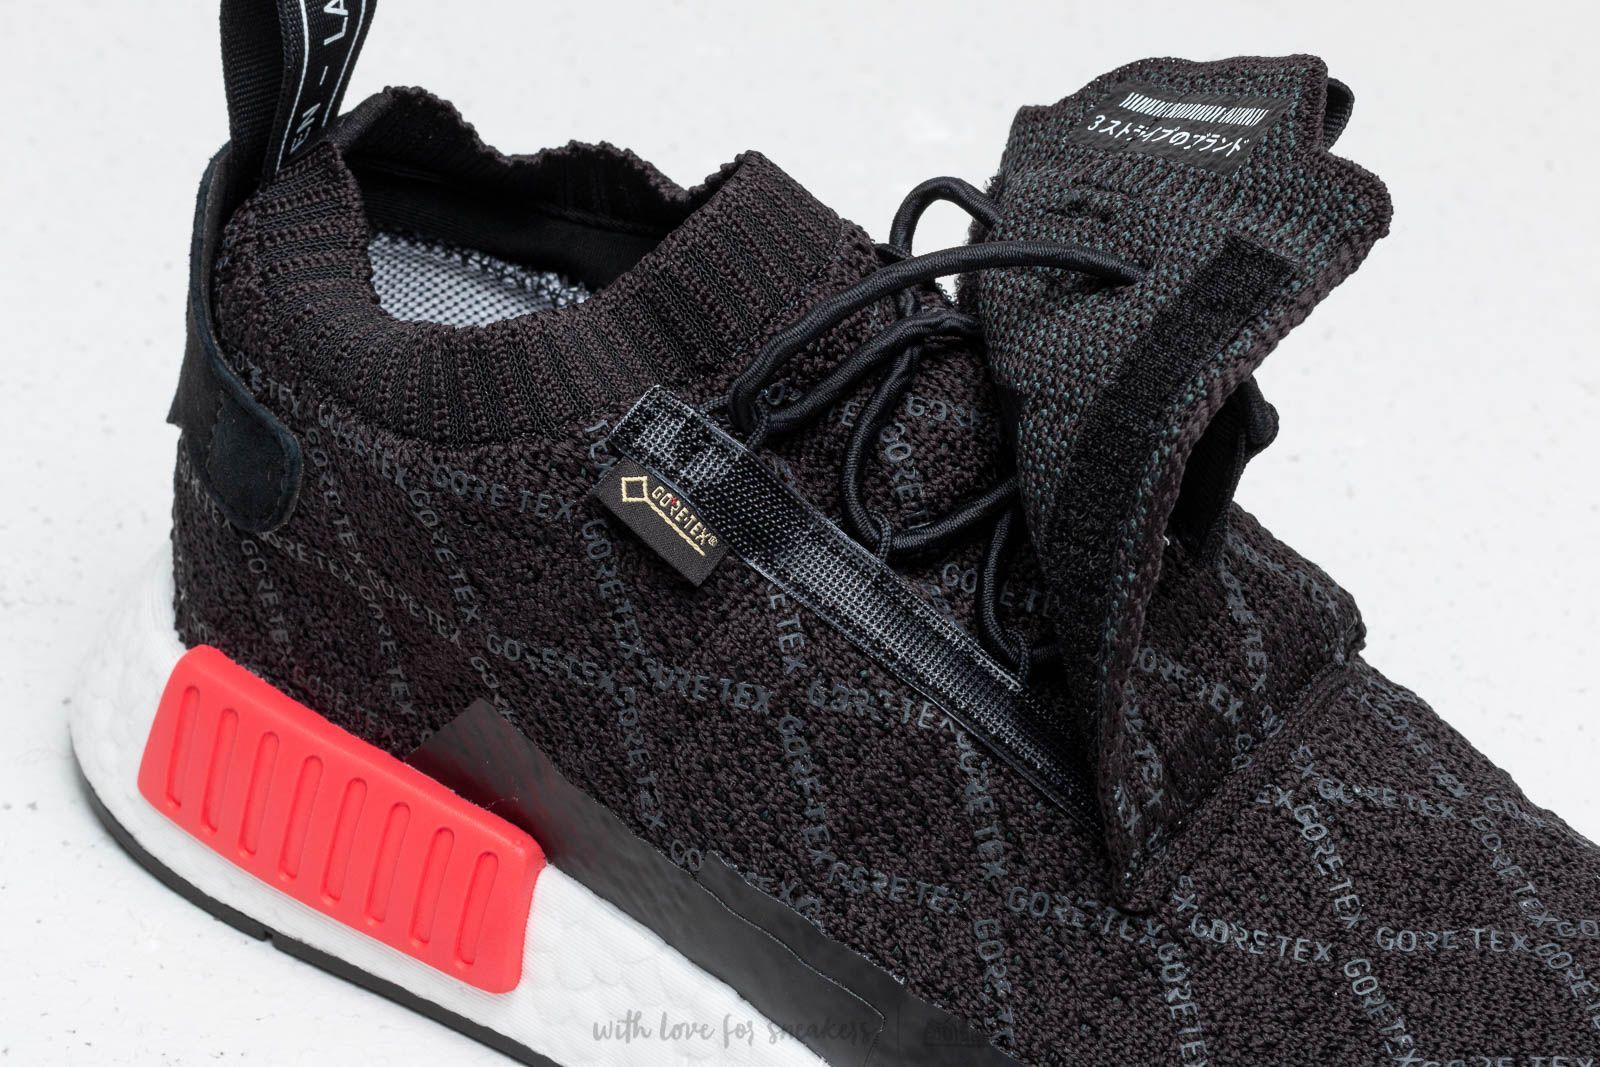 1f1cc0182 Footshop Shored Black adidas Carbon Gtx Core Pk Nmd Ts1 wwzgq0O8